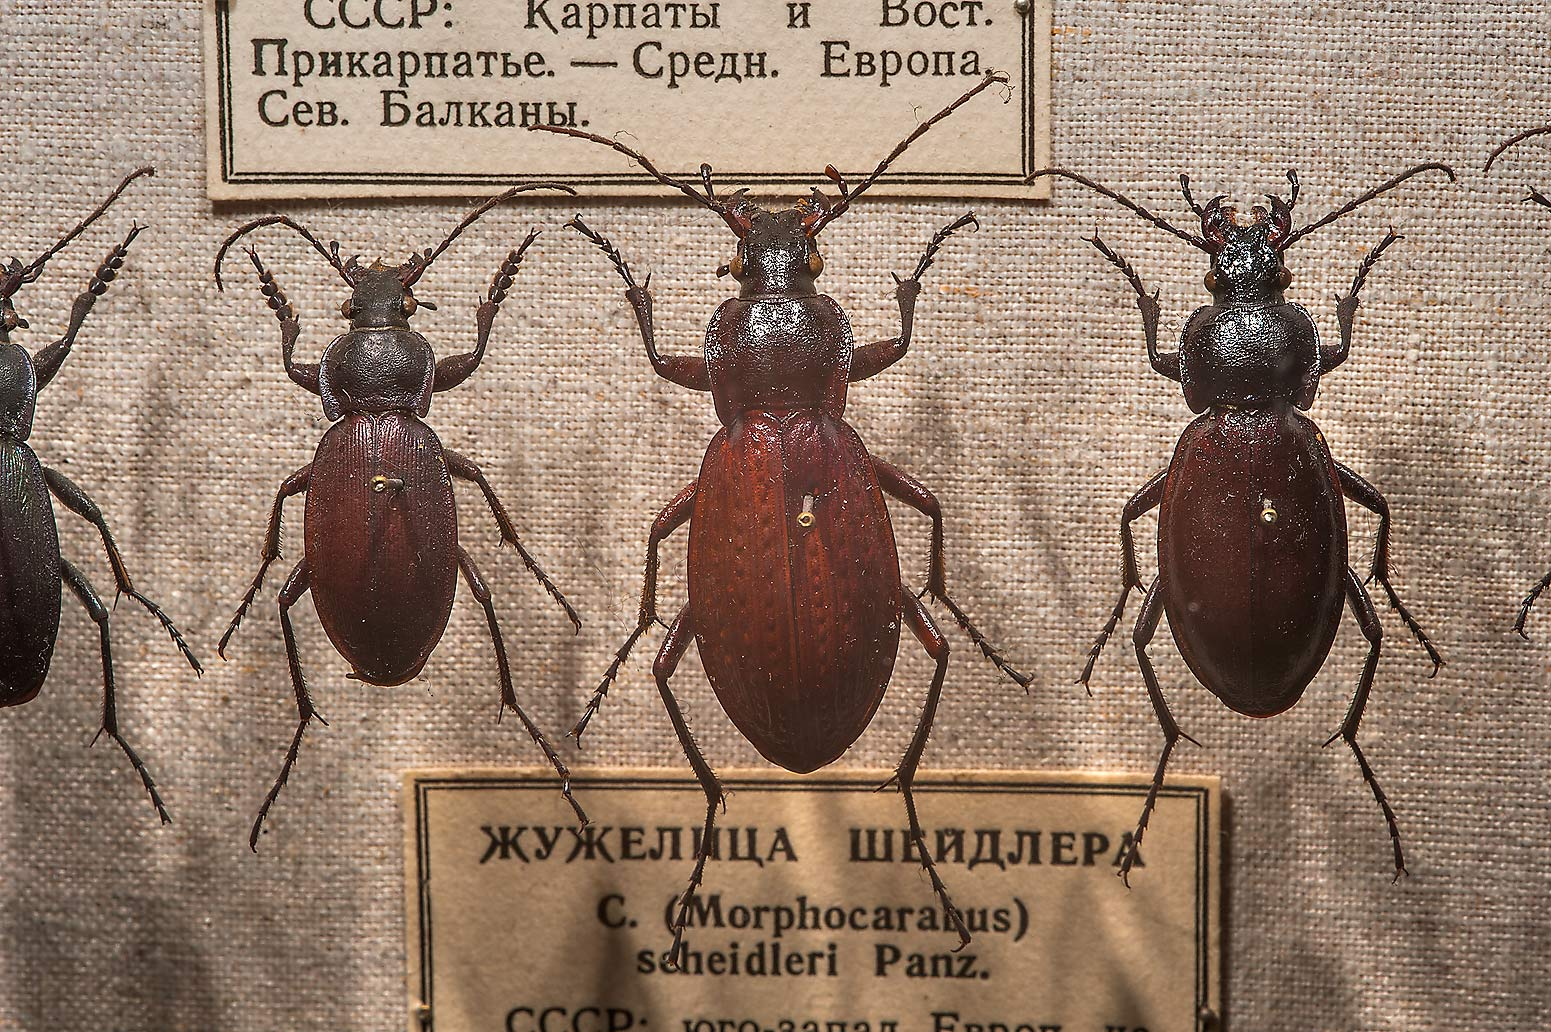 Ground beetles (Carabus Schedleri) in Zoological Museum. St.Petersburg, Russia